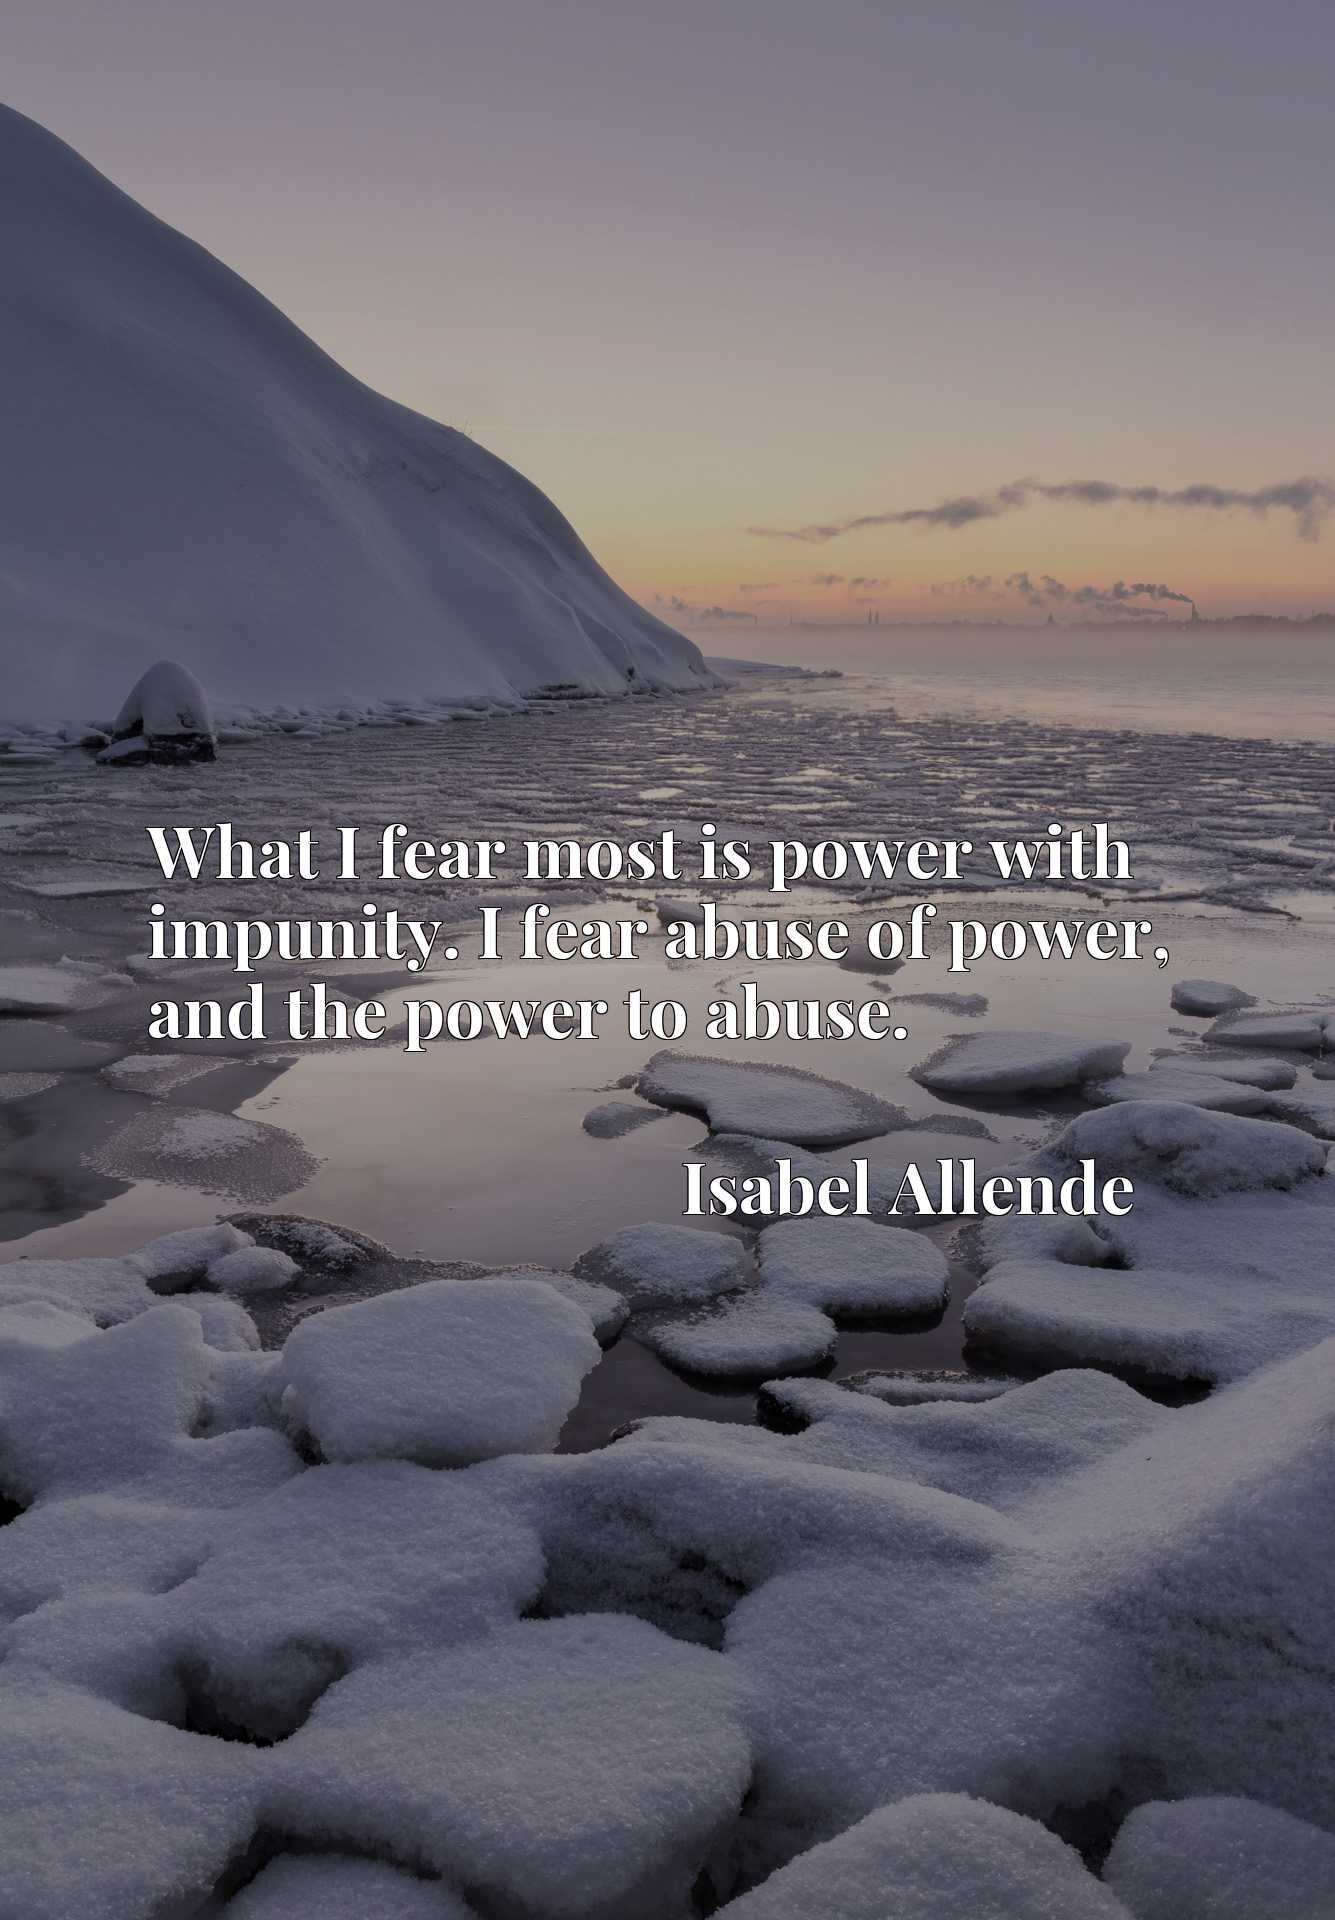 What I fear most is power with impunity. I fear abuse of power, and the power to abuse.